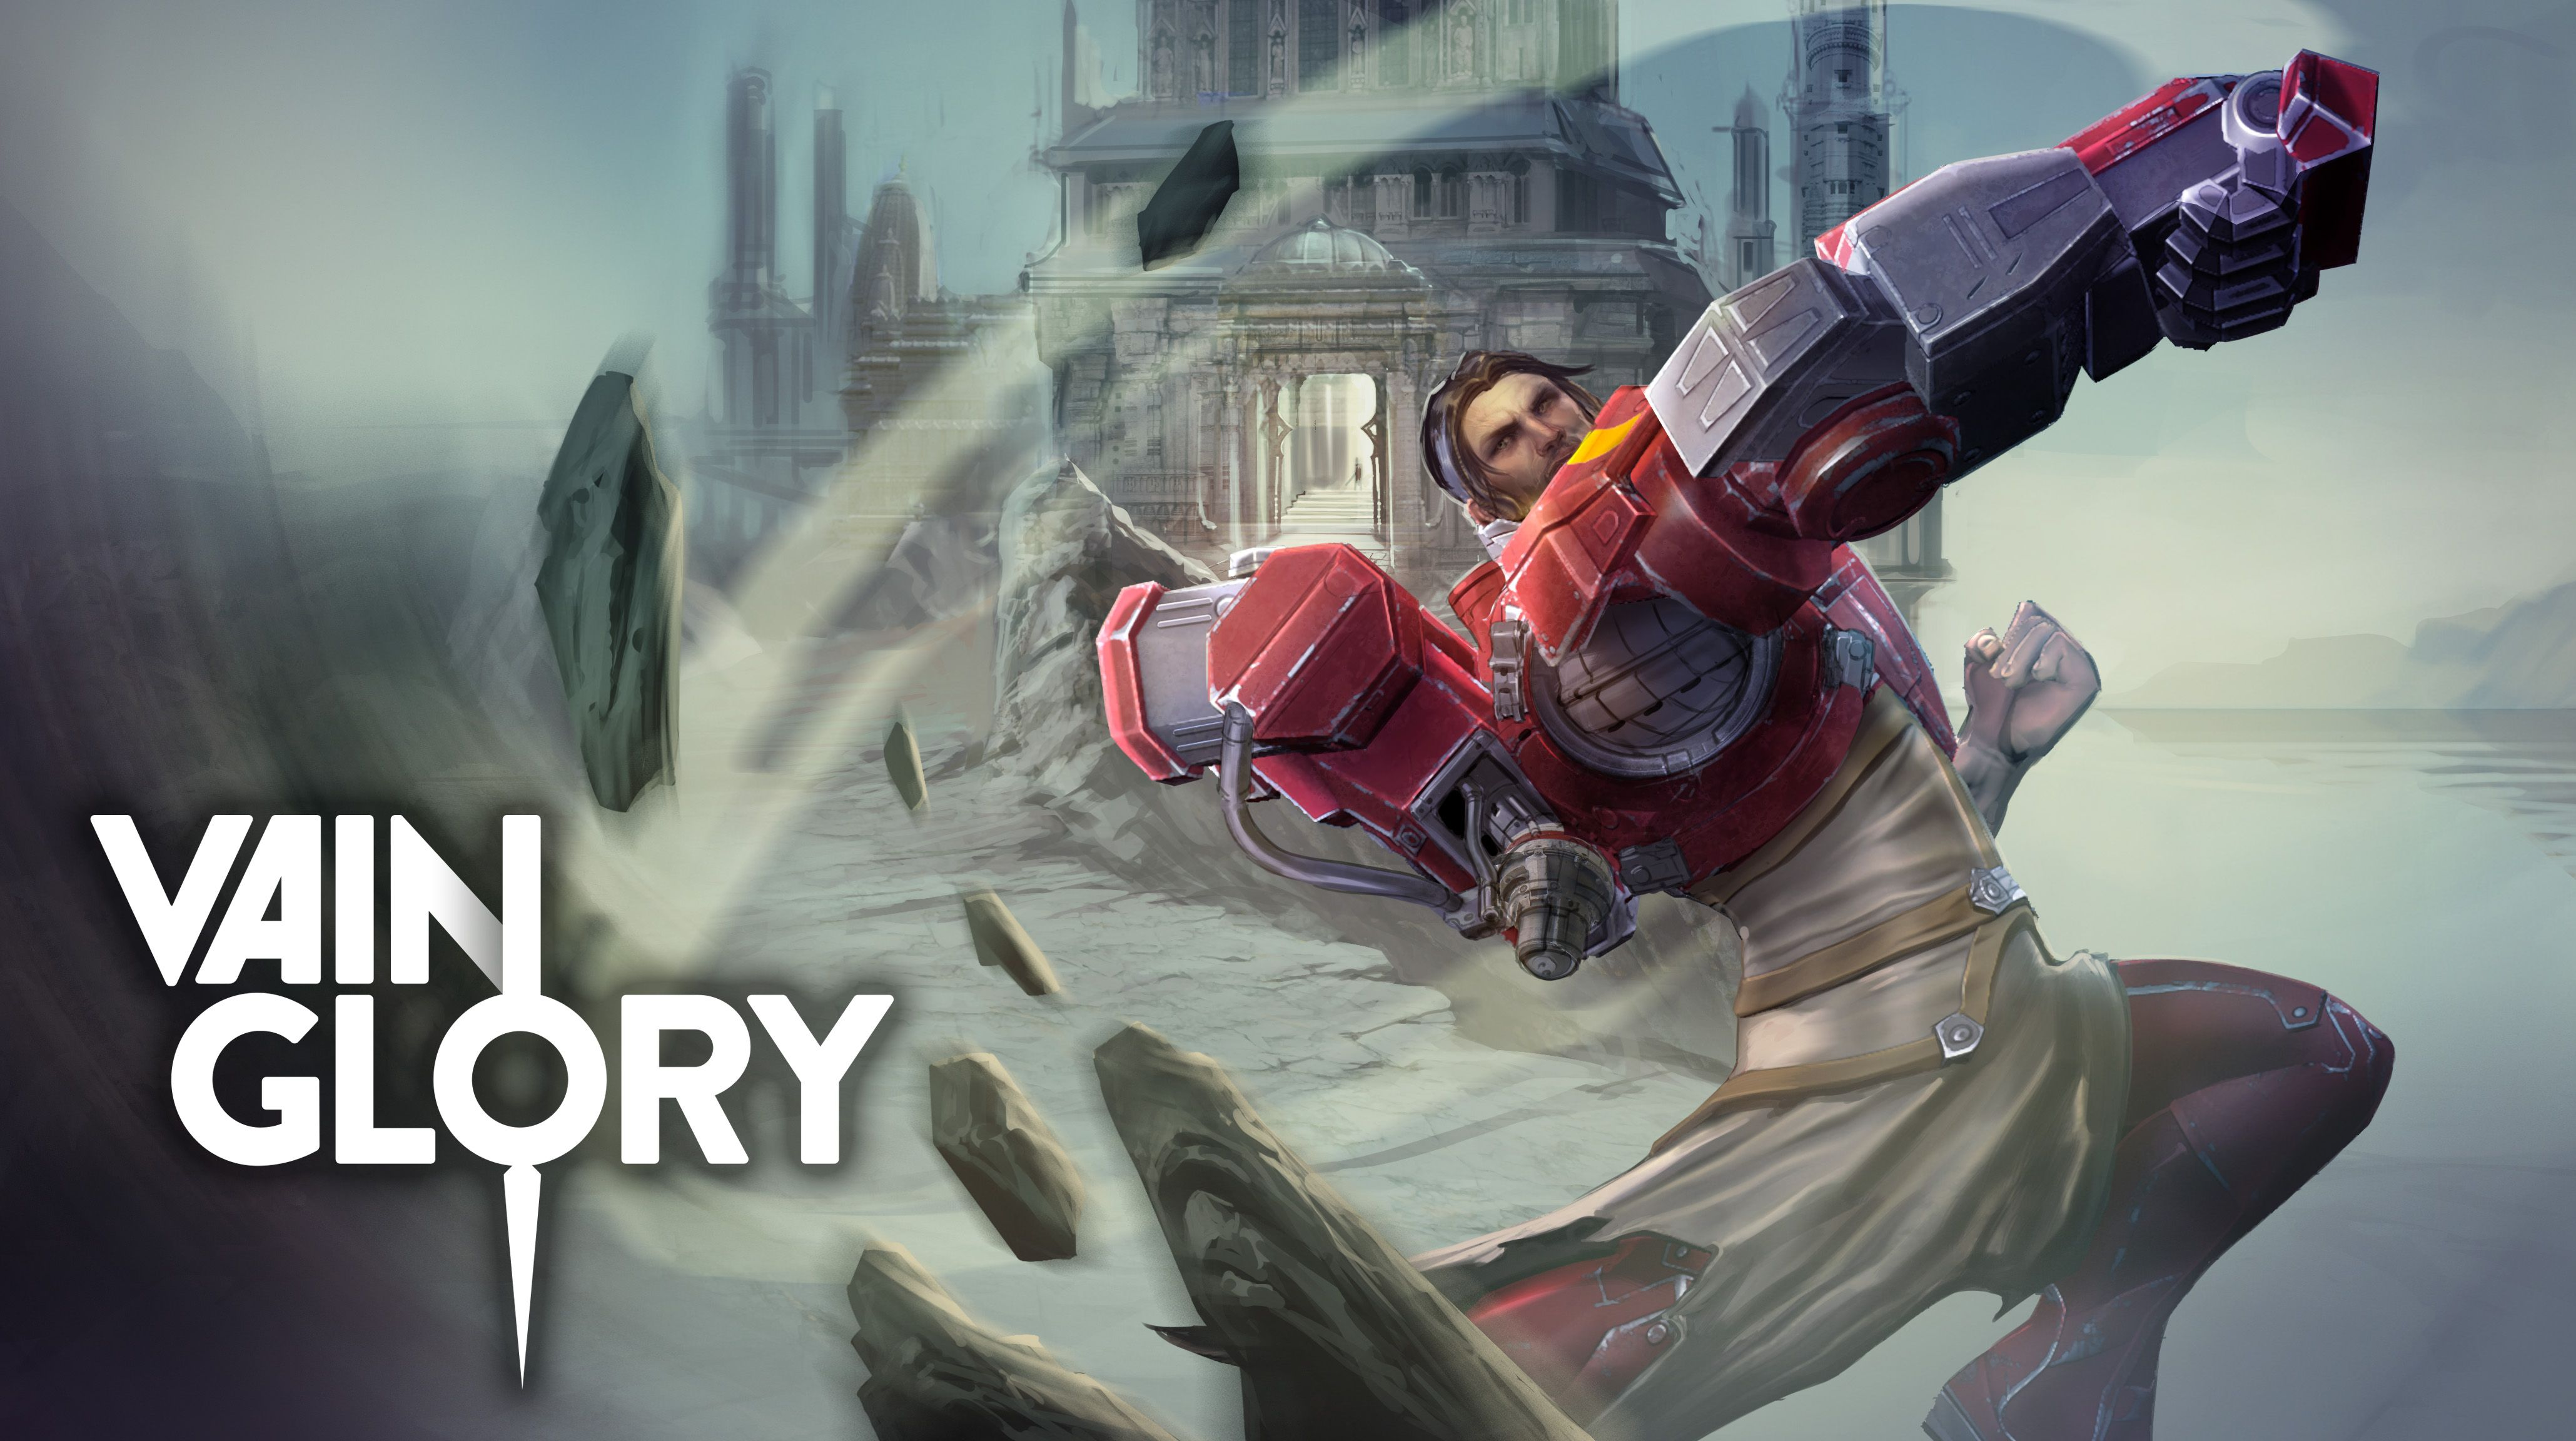 Pin by Gregory Martinez on Vainglory Vainglory, Chaos